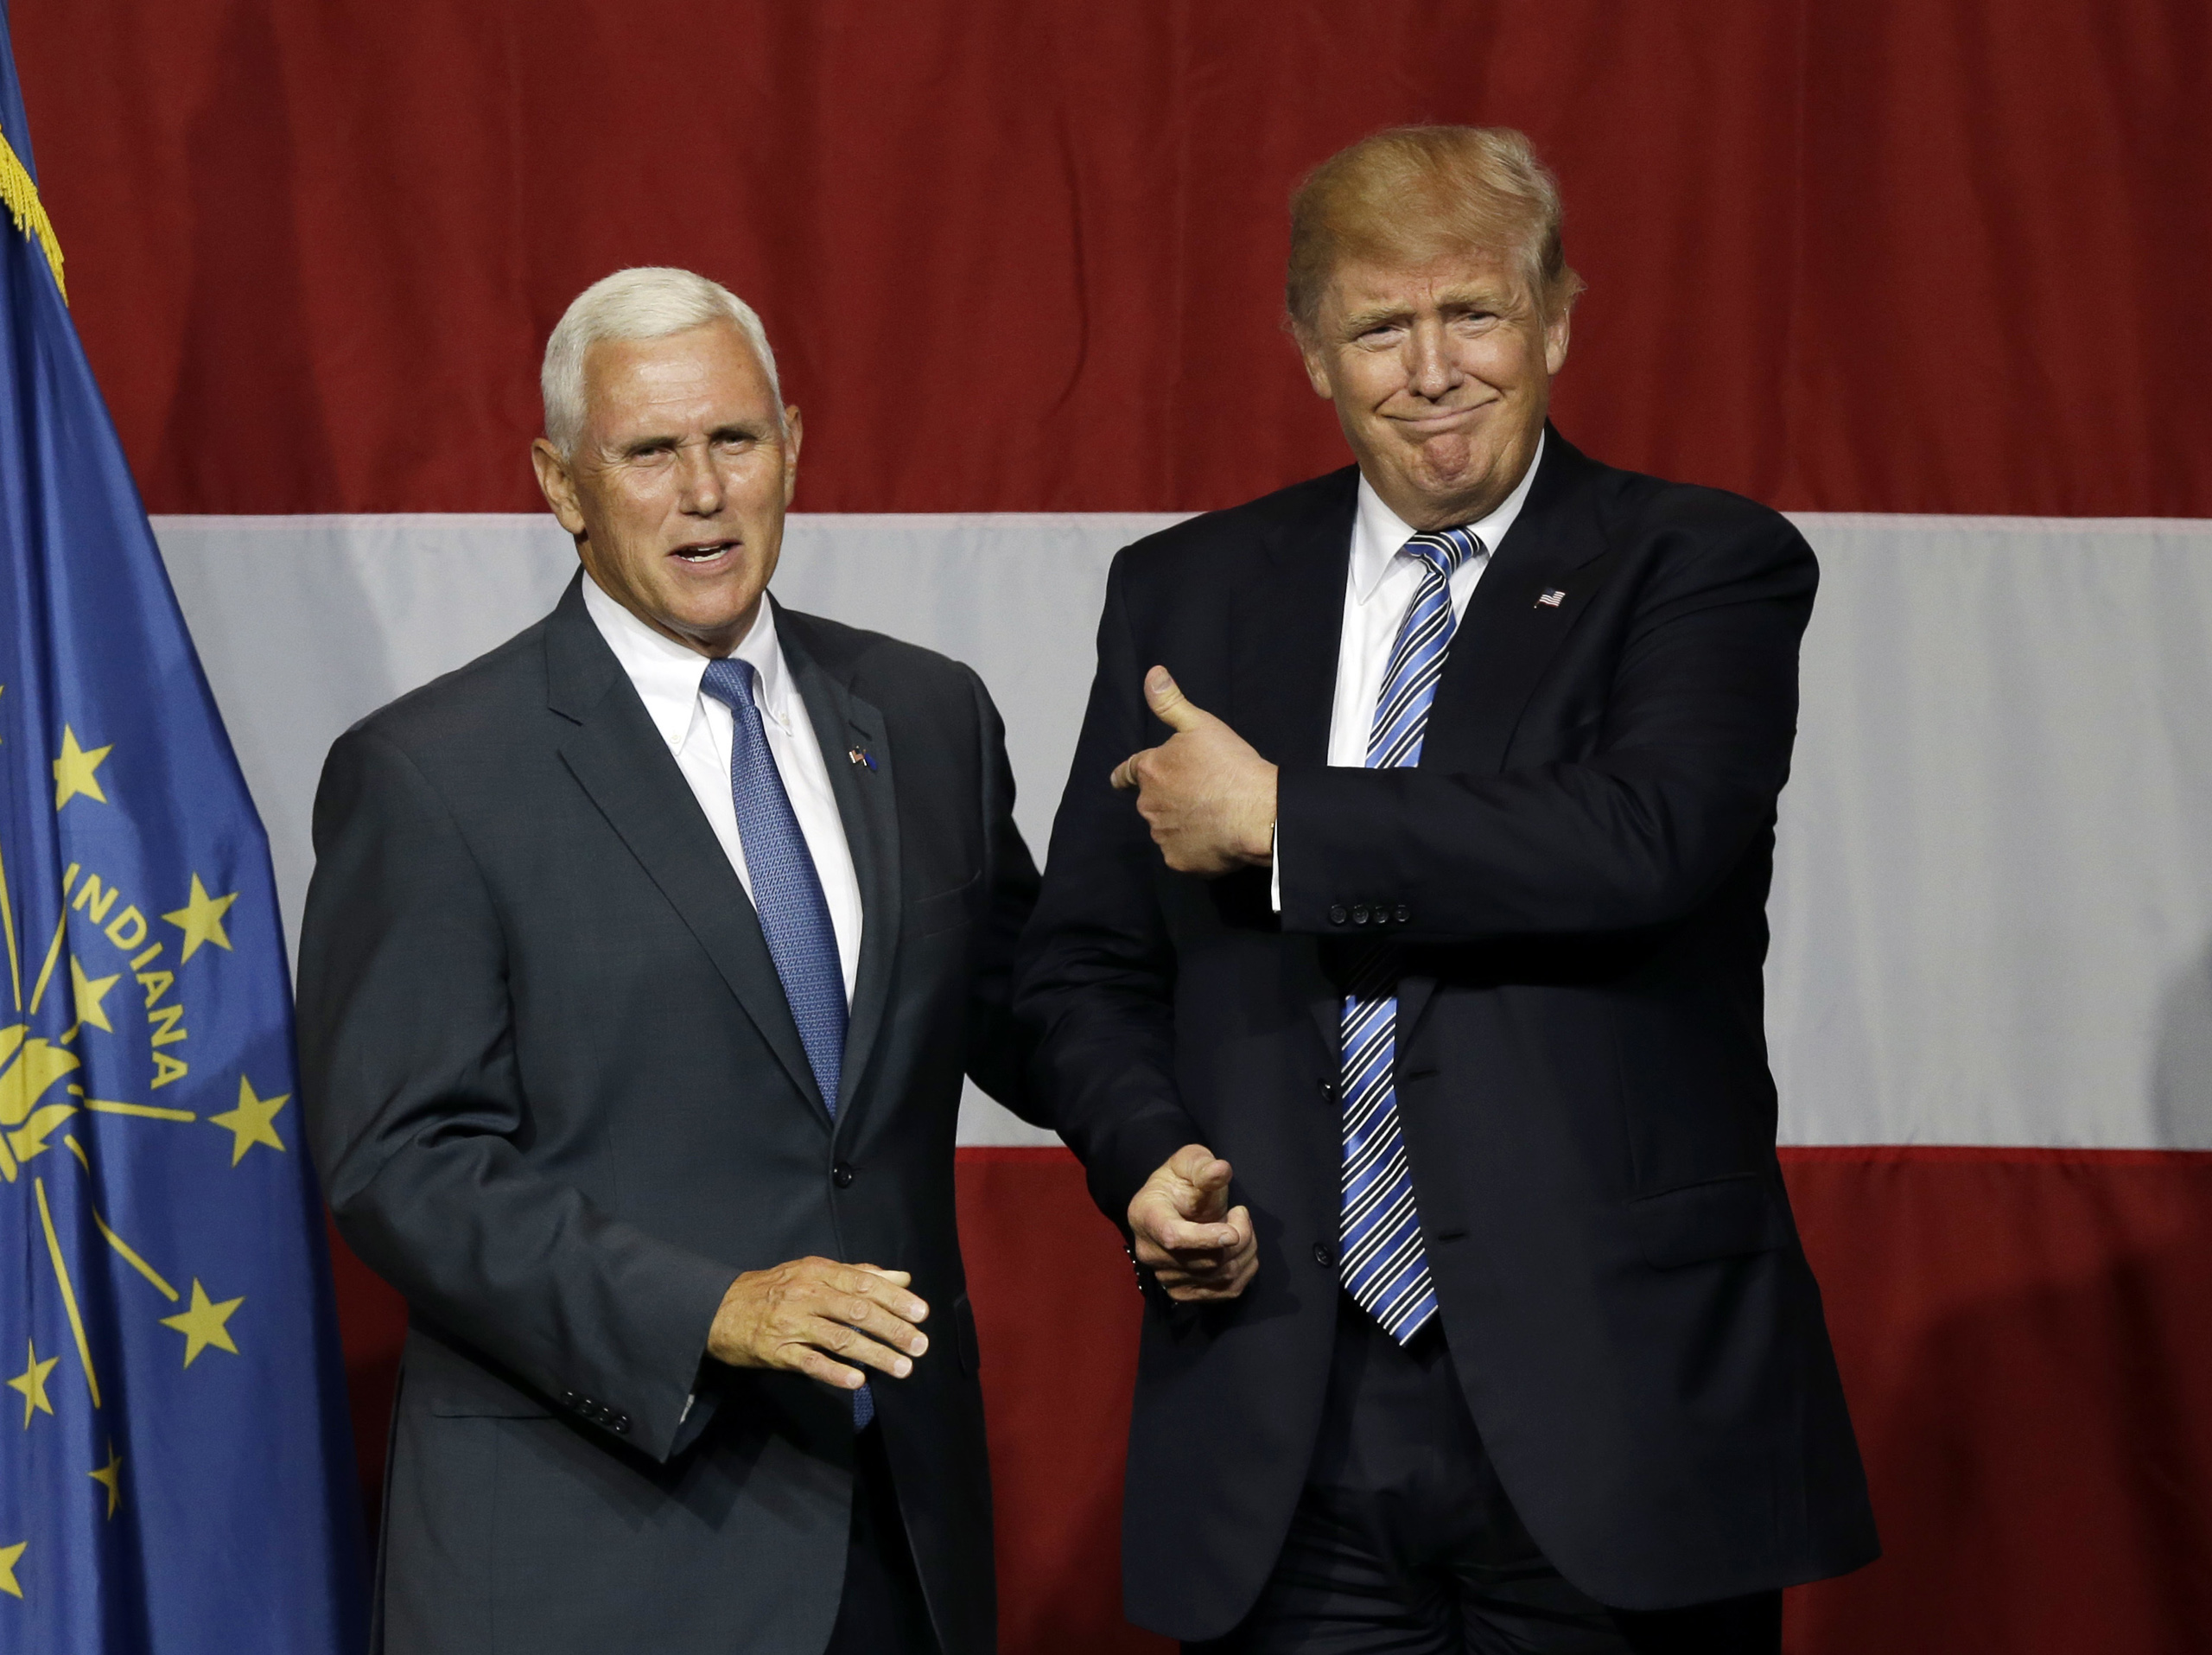 Indiana Gov. Mike Pence joins Republican presidential candidate Donald Trump at a rally in Westfield, Ind., Tuesday, July 12, 2016. (AP Photo/Michael Conroy)